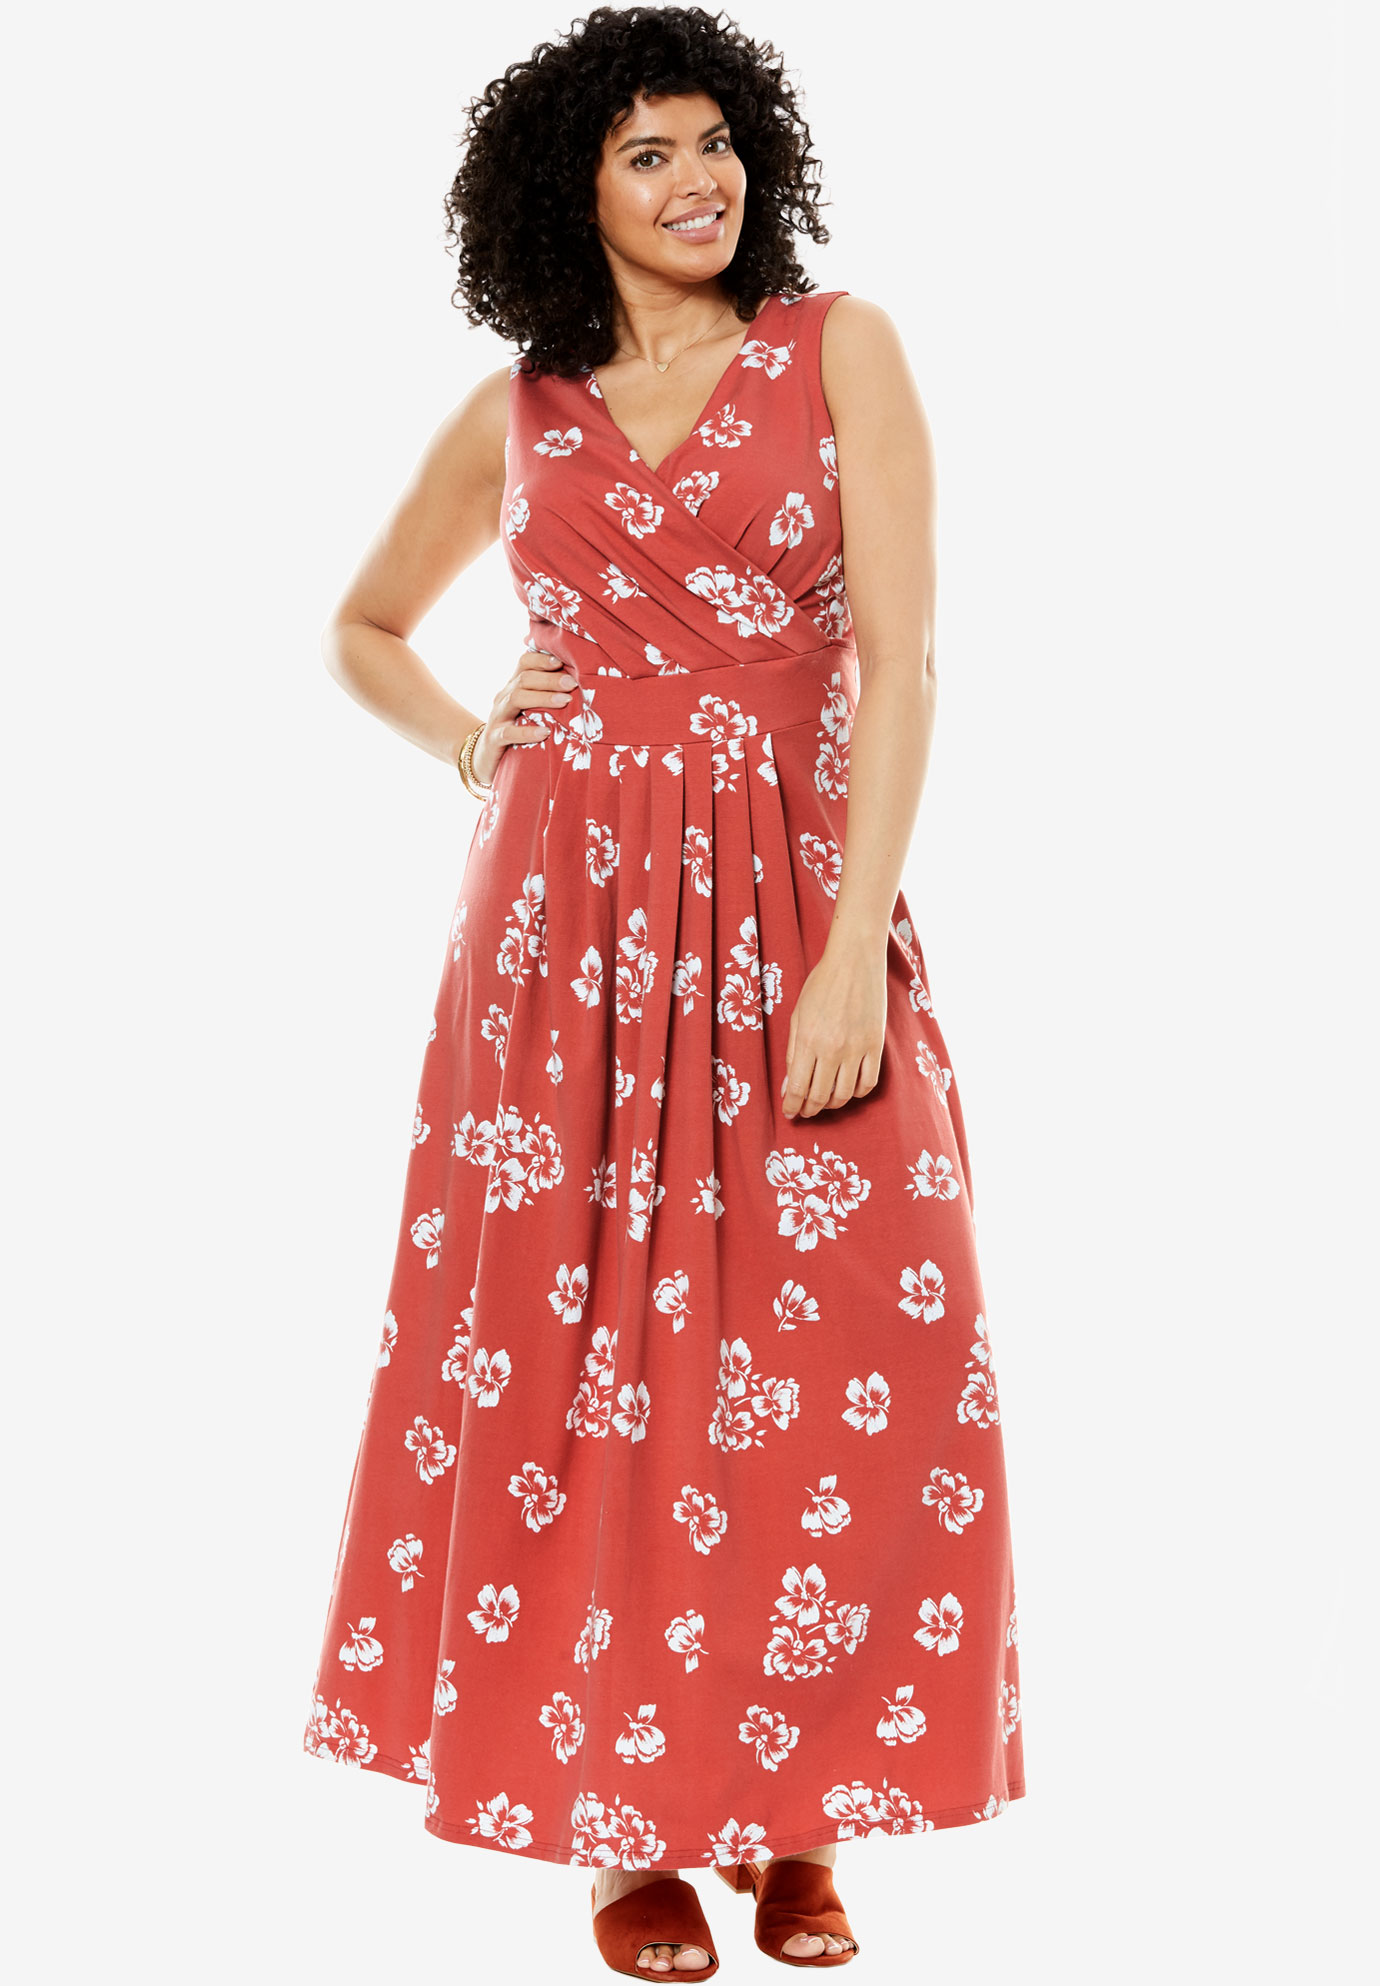 Stretch knit surplice dress in prints & solids, CLAY FLORAL, hi-res